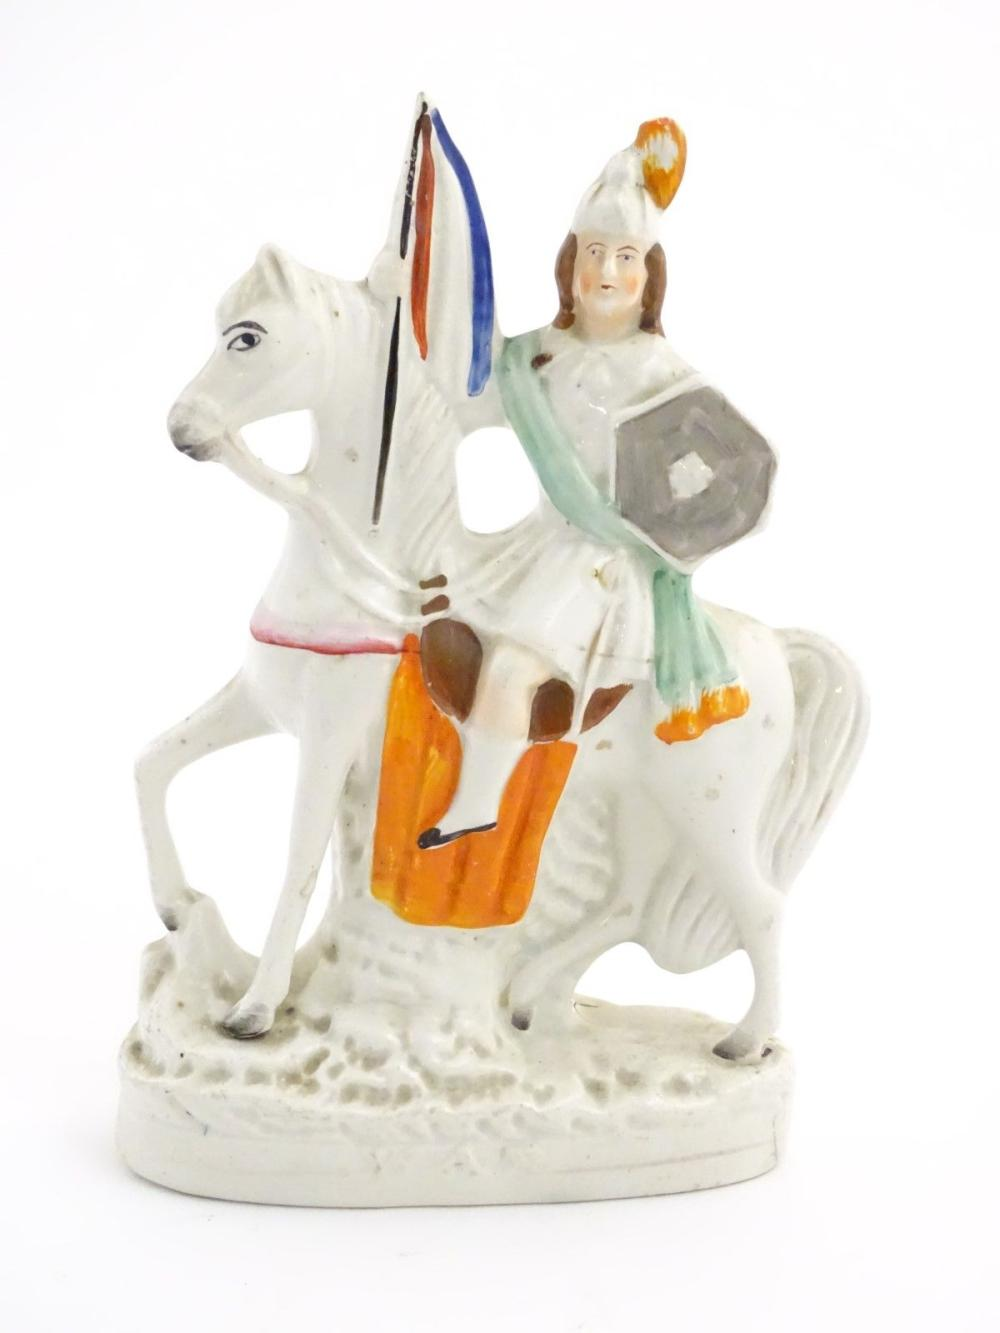 A Staffordshire pottery flat back figure of a knight on horseback. Approx. 11'' high.